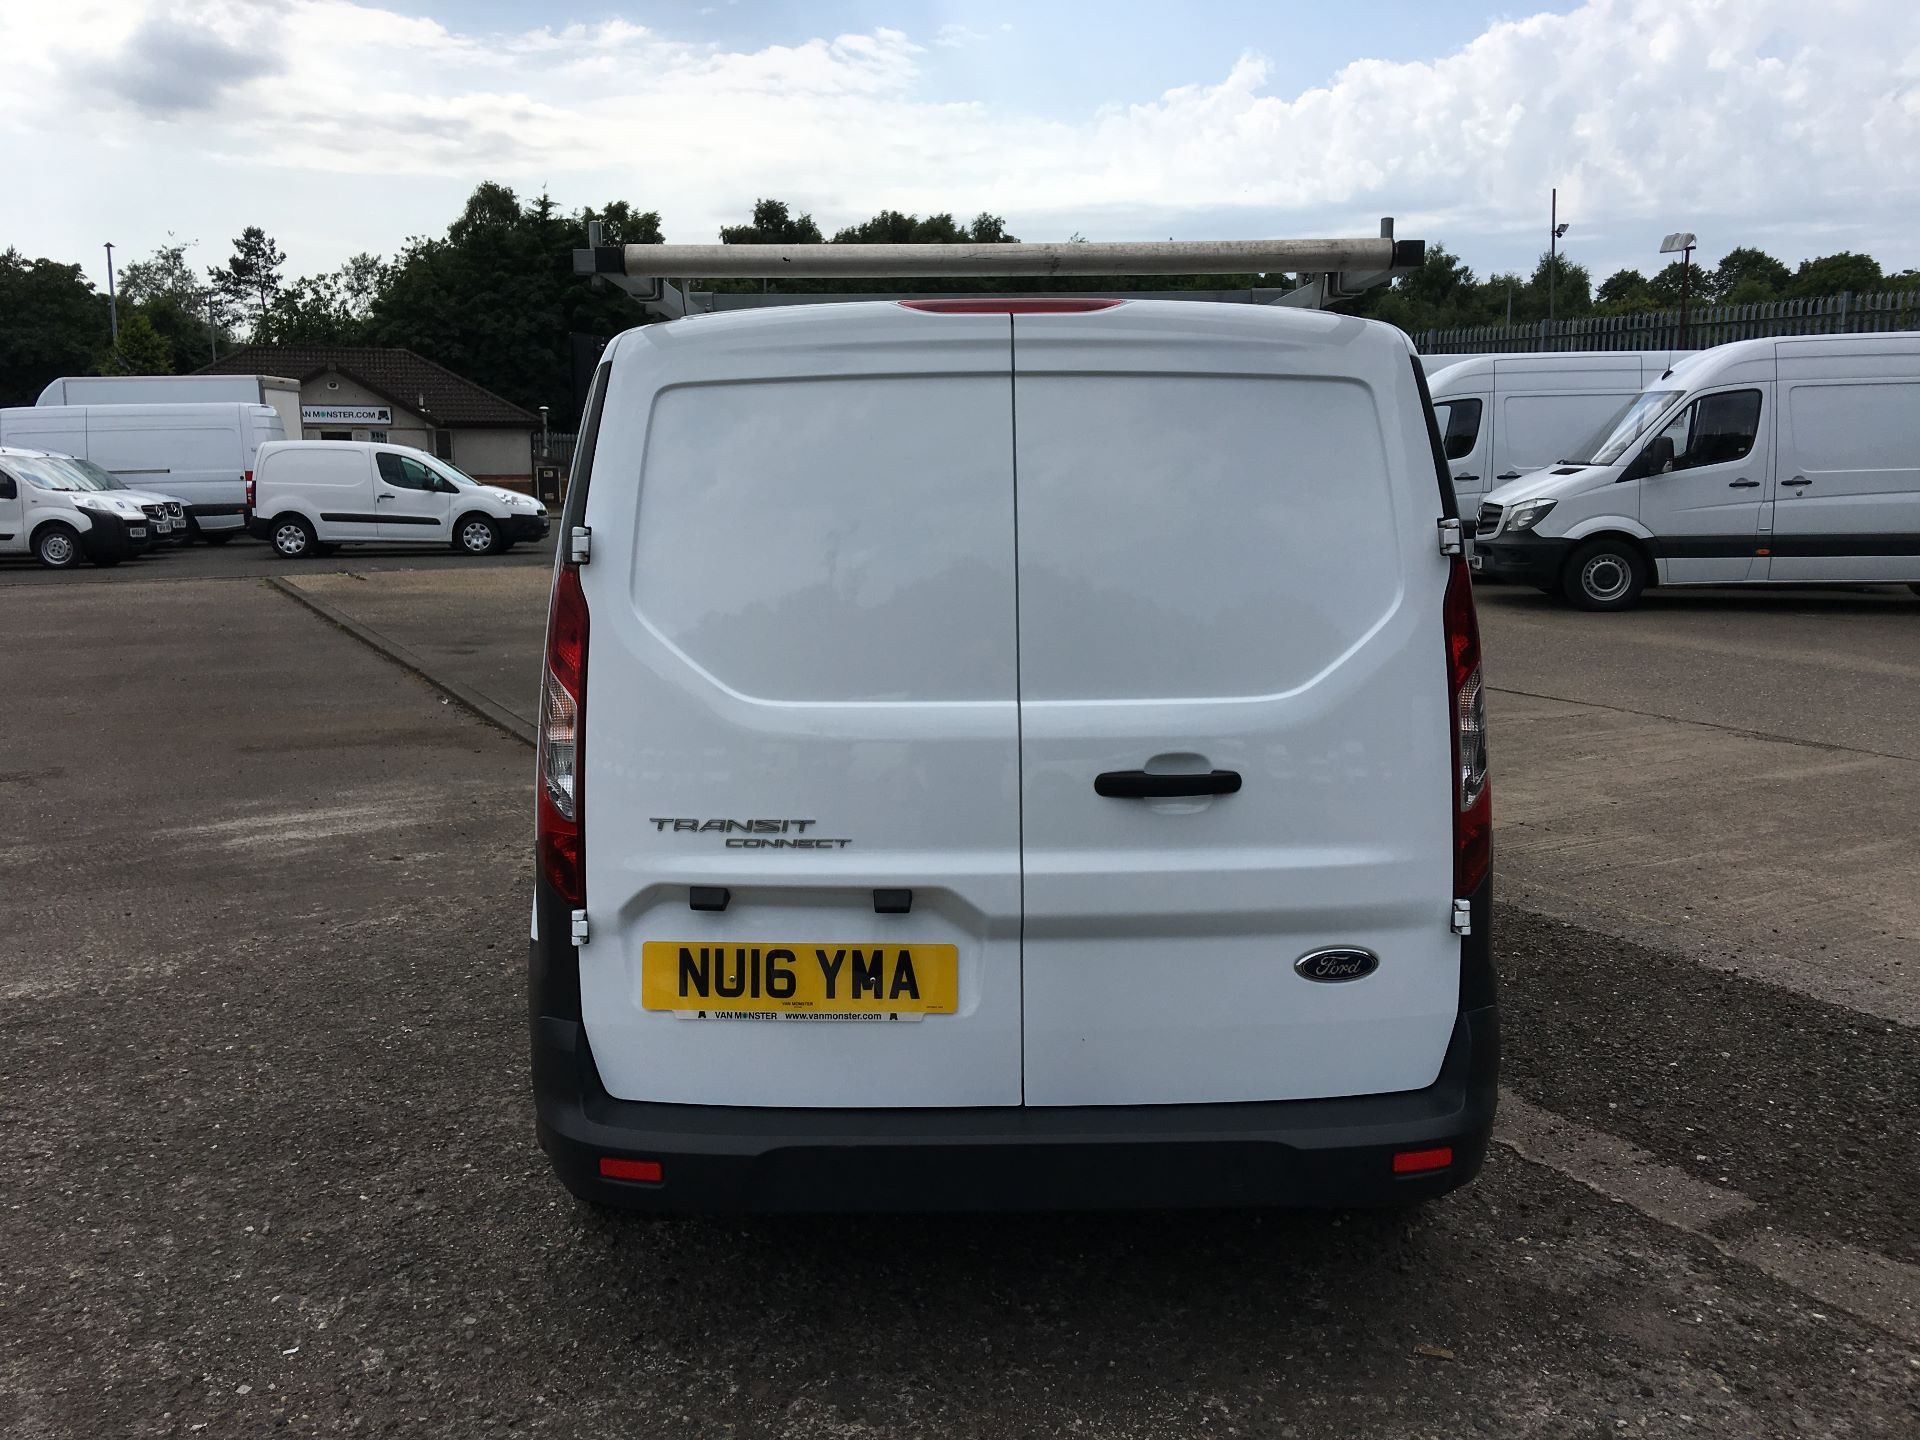 2016 Ford Transit Connect 220 L1 DIESEL 1.5 TDCI 100PS VAN EURO 6 (NU16YMA) Image 10